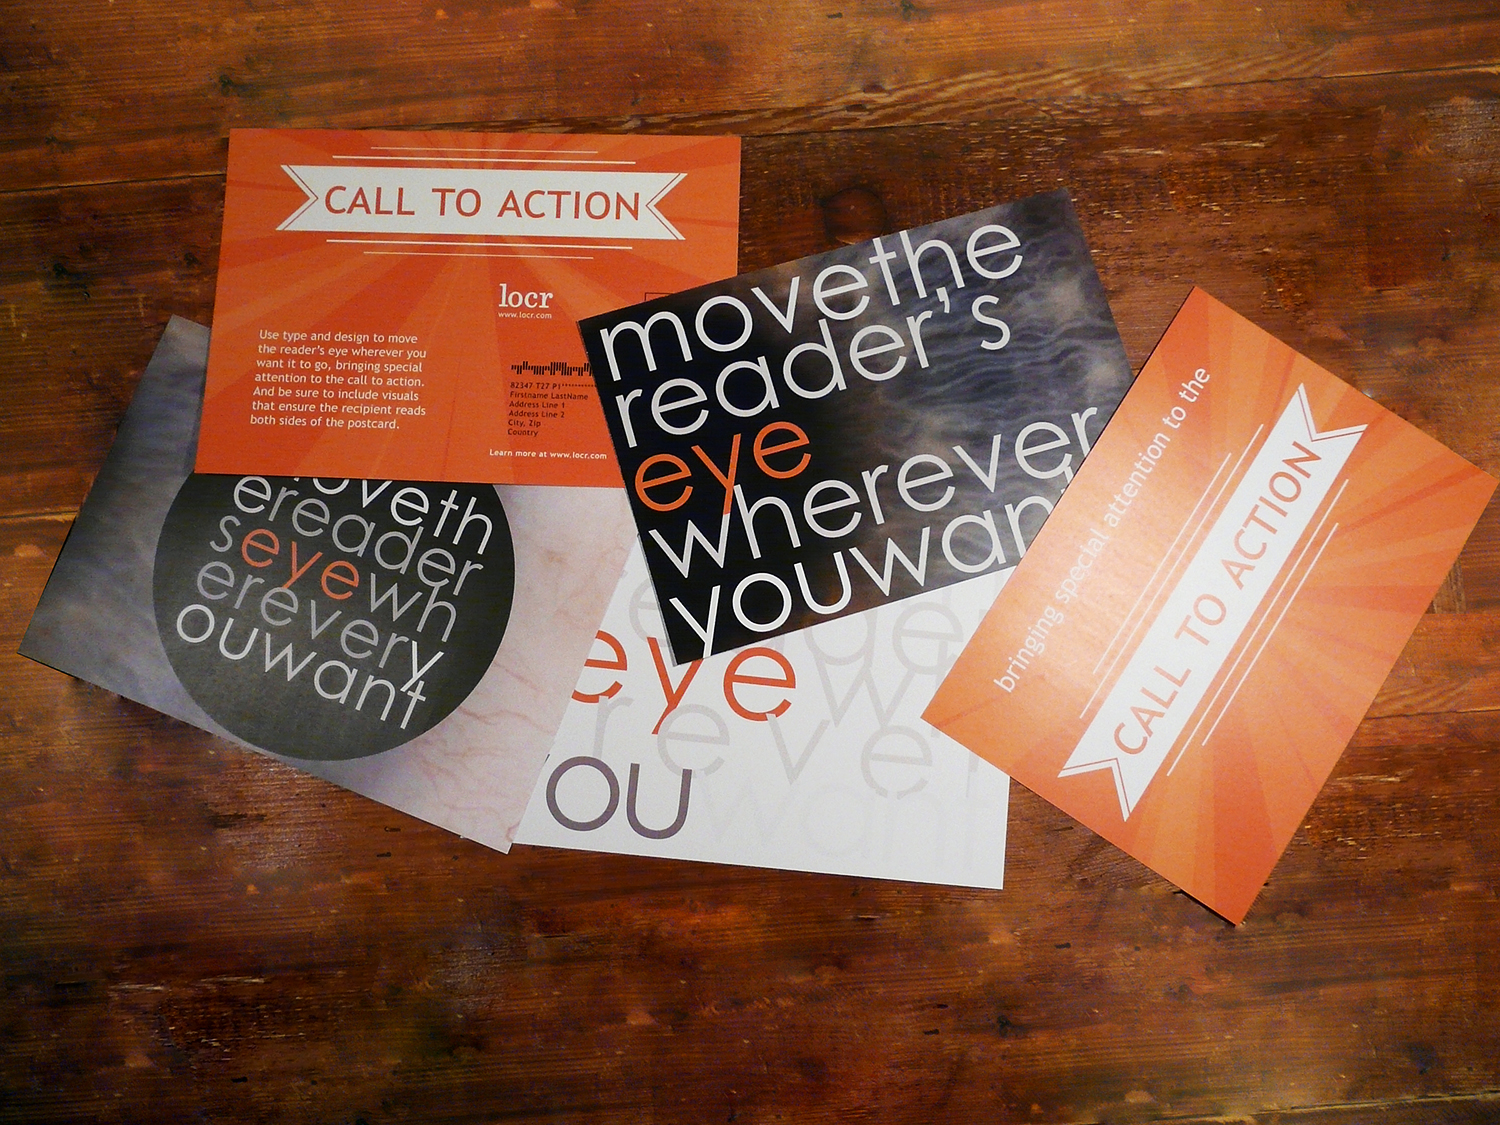 Well designed direct mail marketing campaign with engaging call to action moves the reader's eye